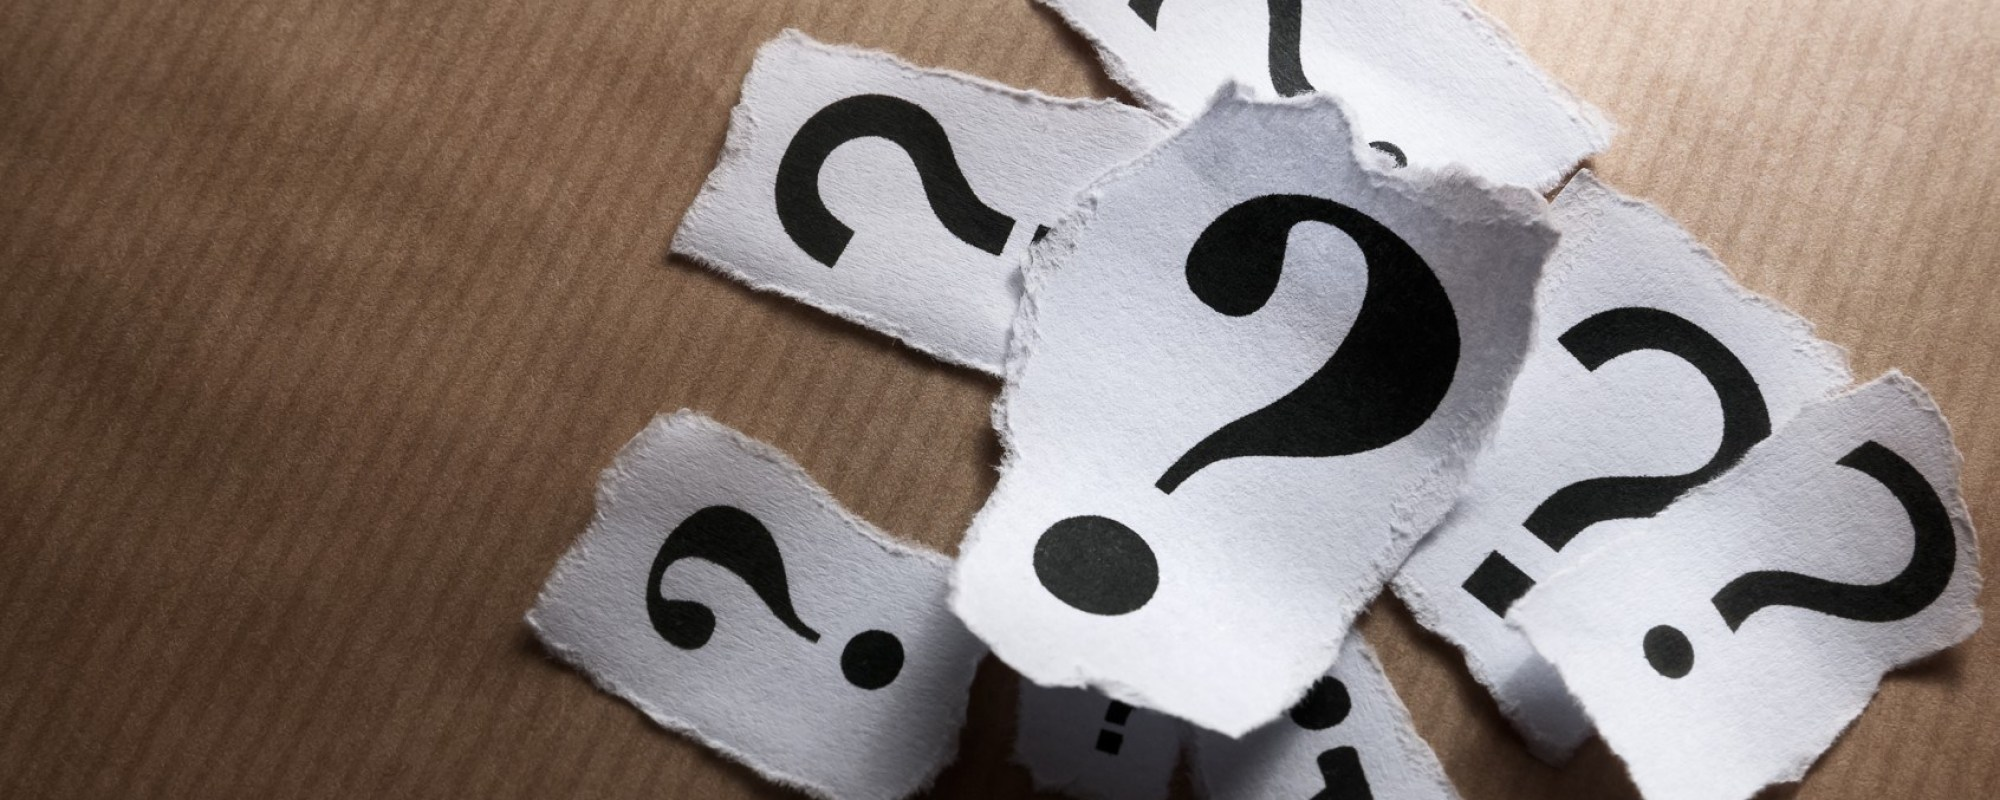 Three Questions… No One Asks Aloud